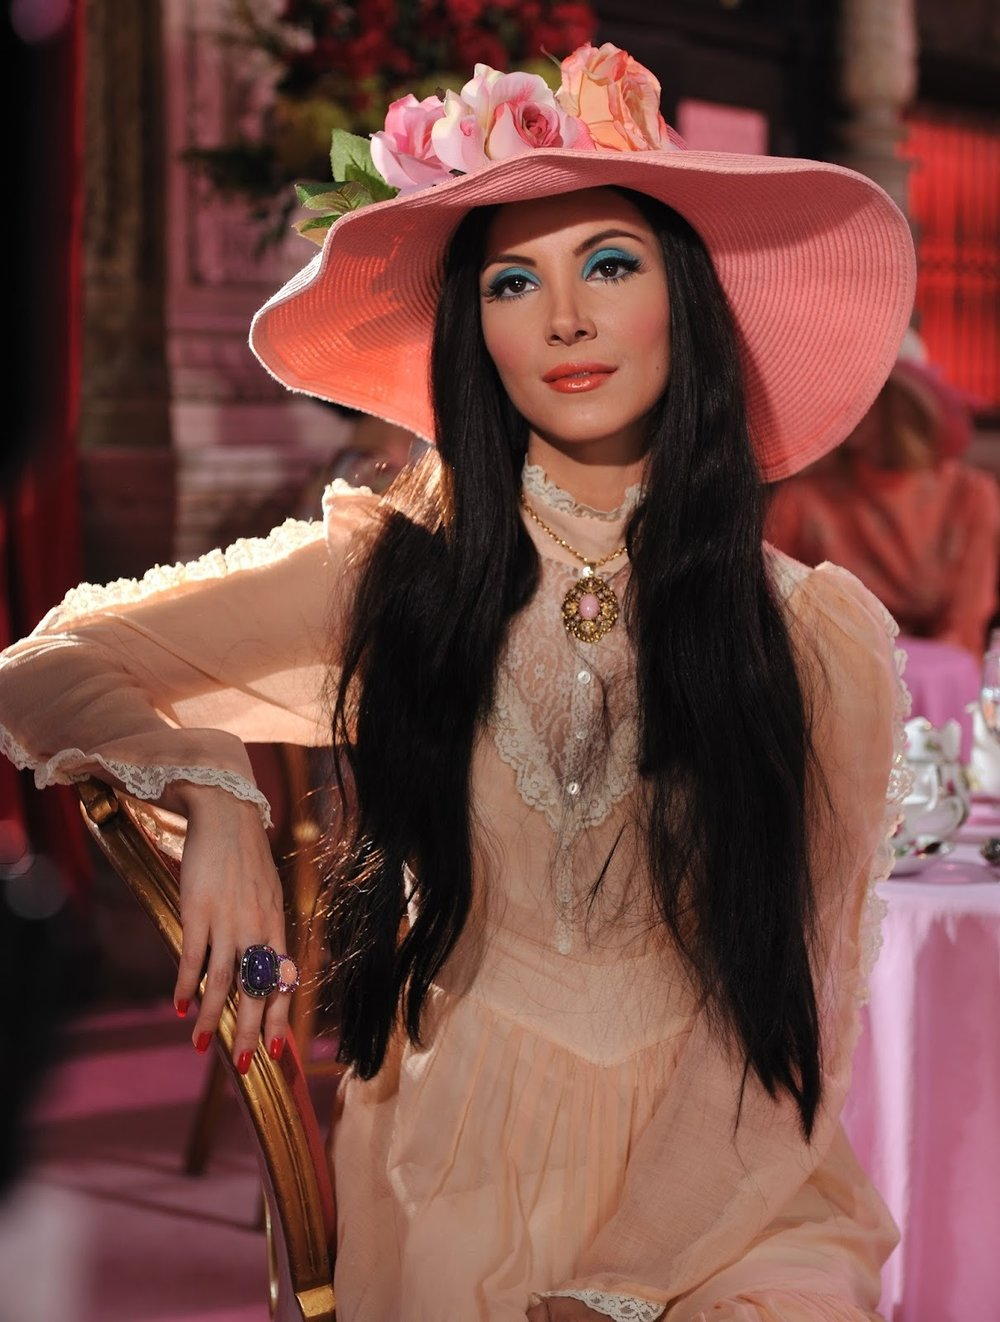 The Love Witch (one of my recommended films for spooky szn!)